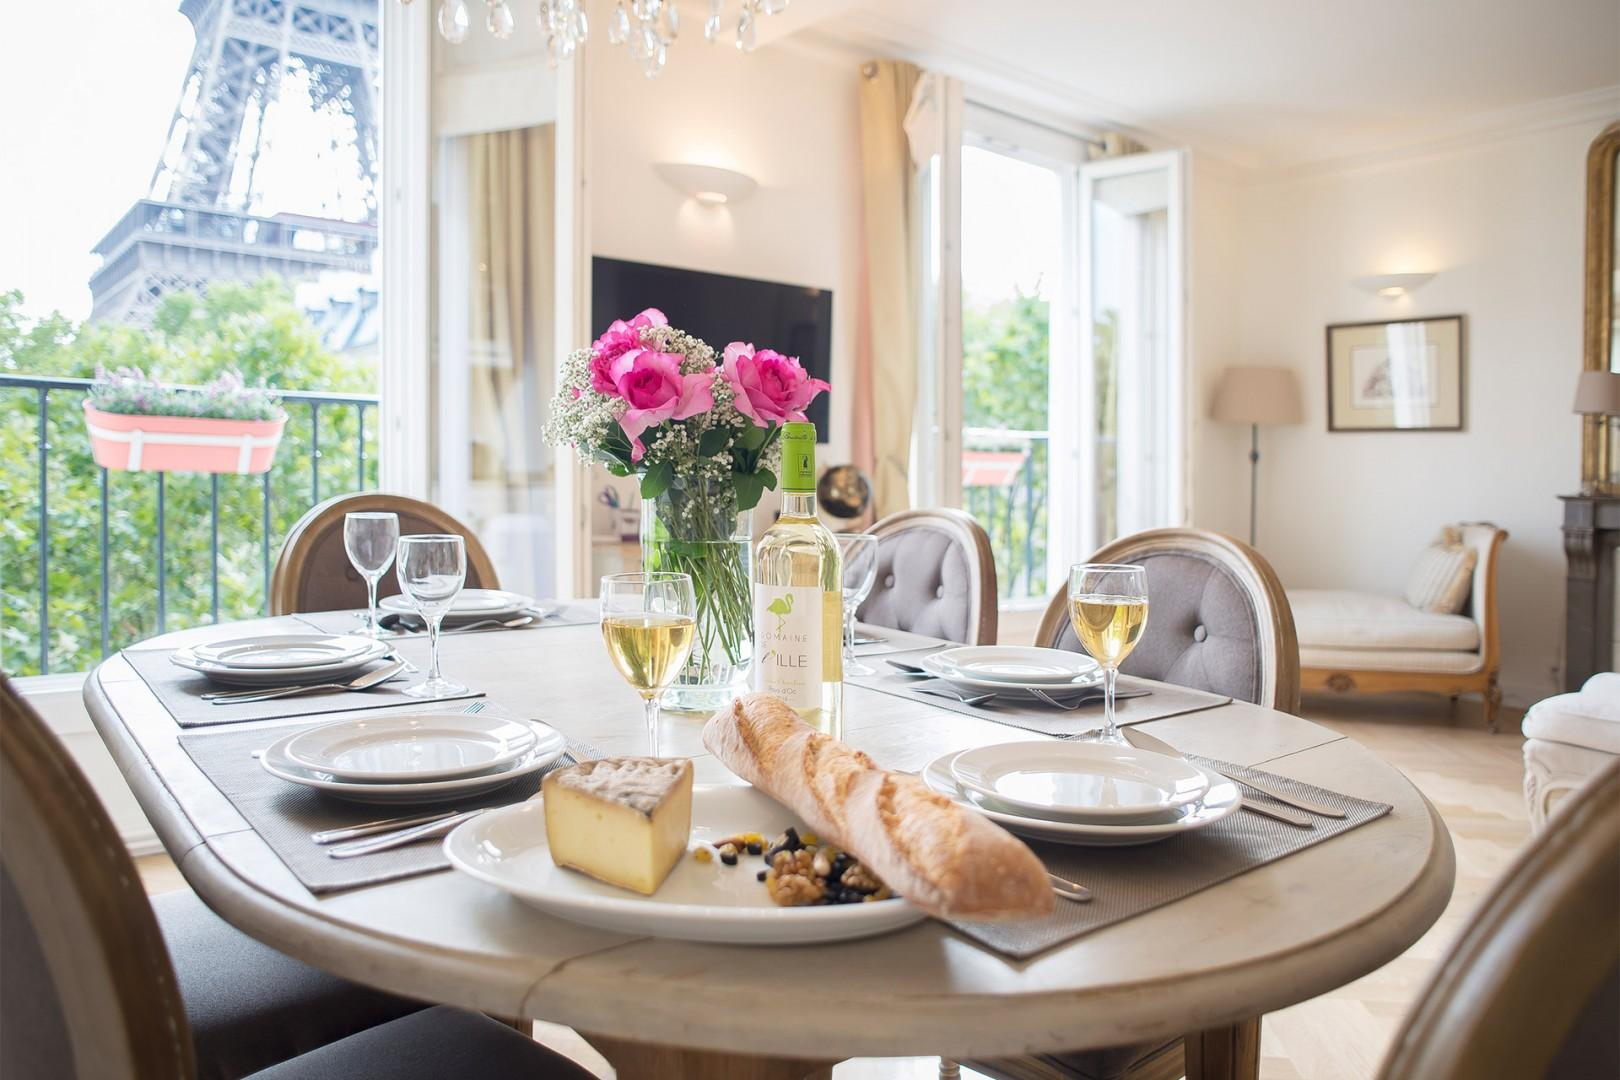 Stunning Parisian views from the dining table